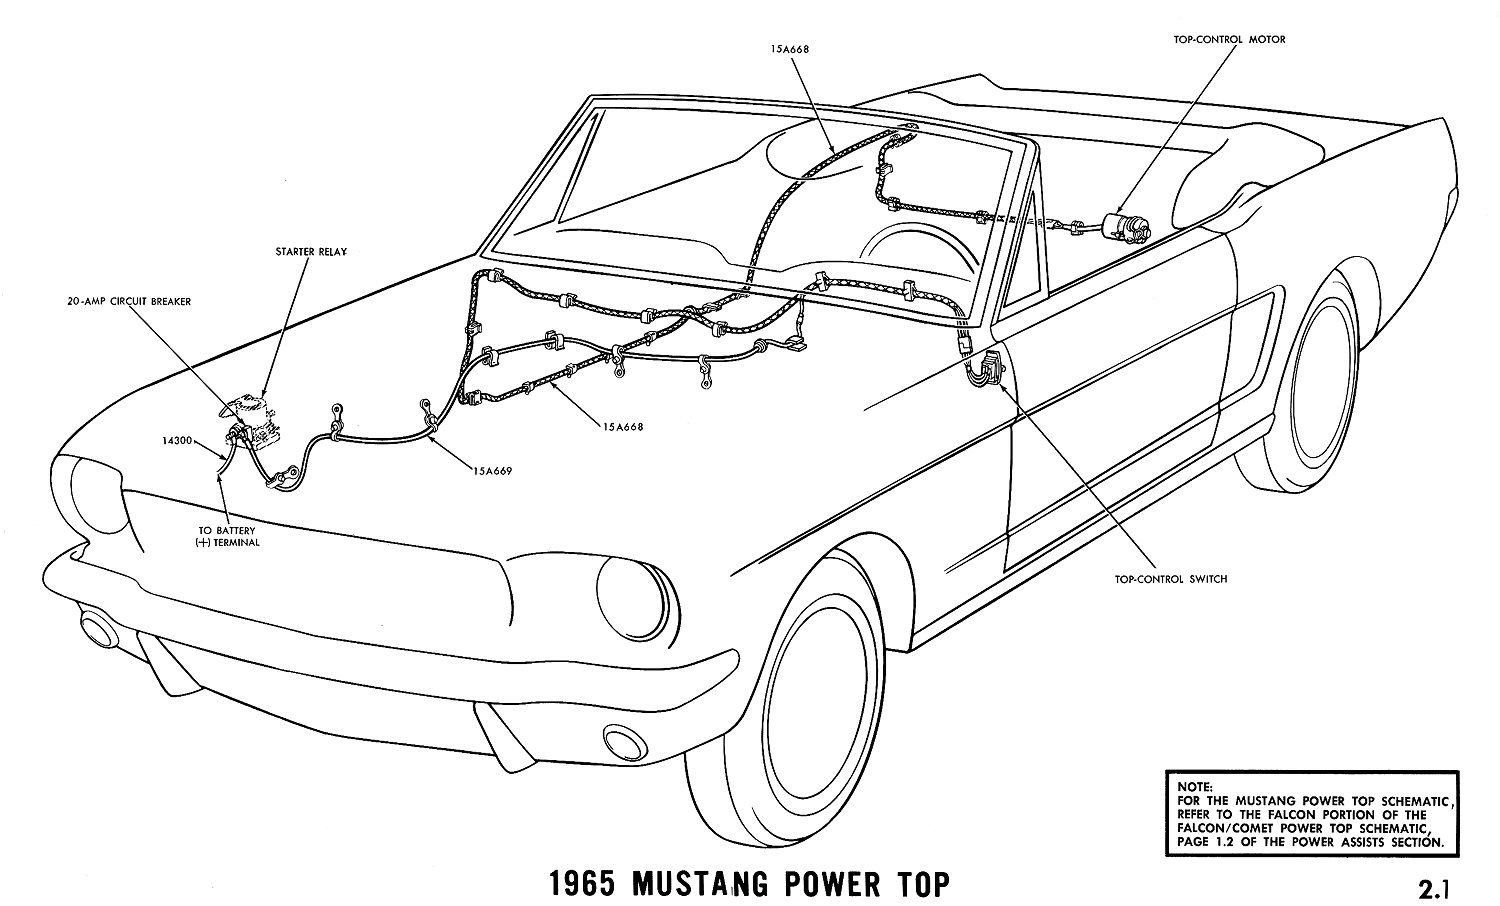 1965j 1965 mustang wiring diagrams average joe restoration 1966 mustang radio wiring diagram at bakdesigns.co